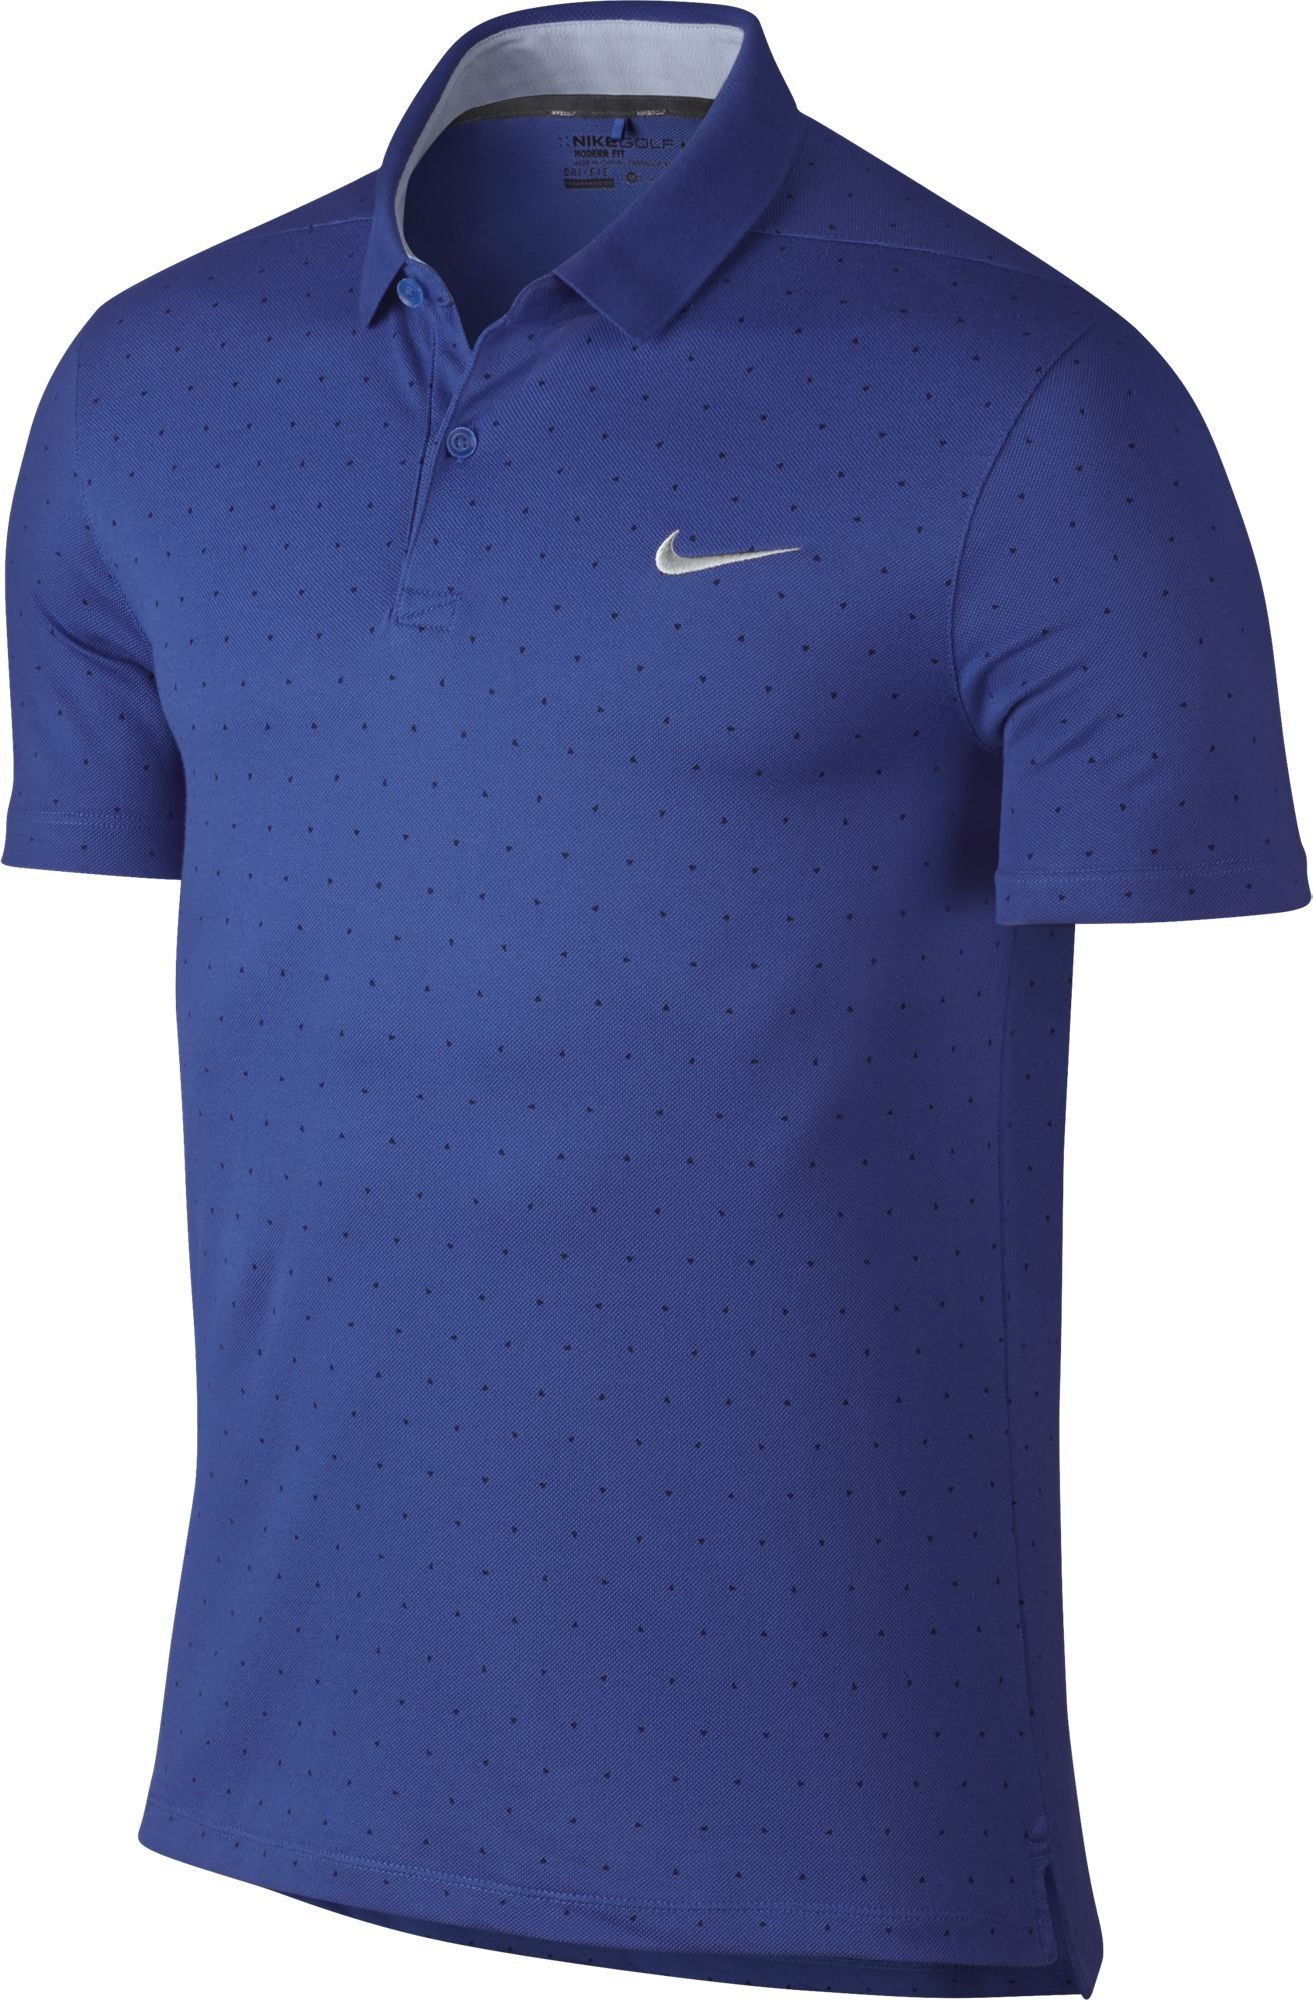 2016 Nike Modern Fit Transition Dry Print Golf Polo Men 39 S: modern fit golf shirt